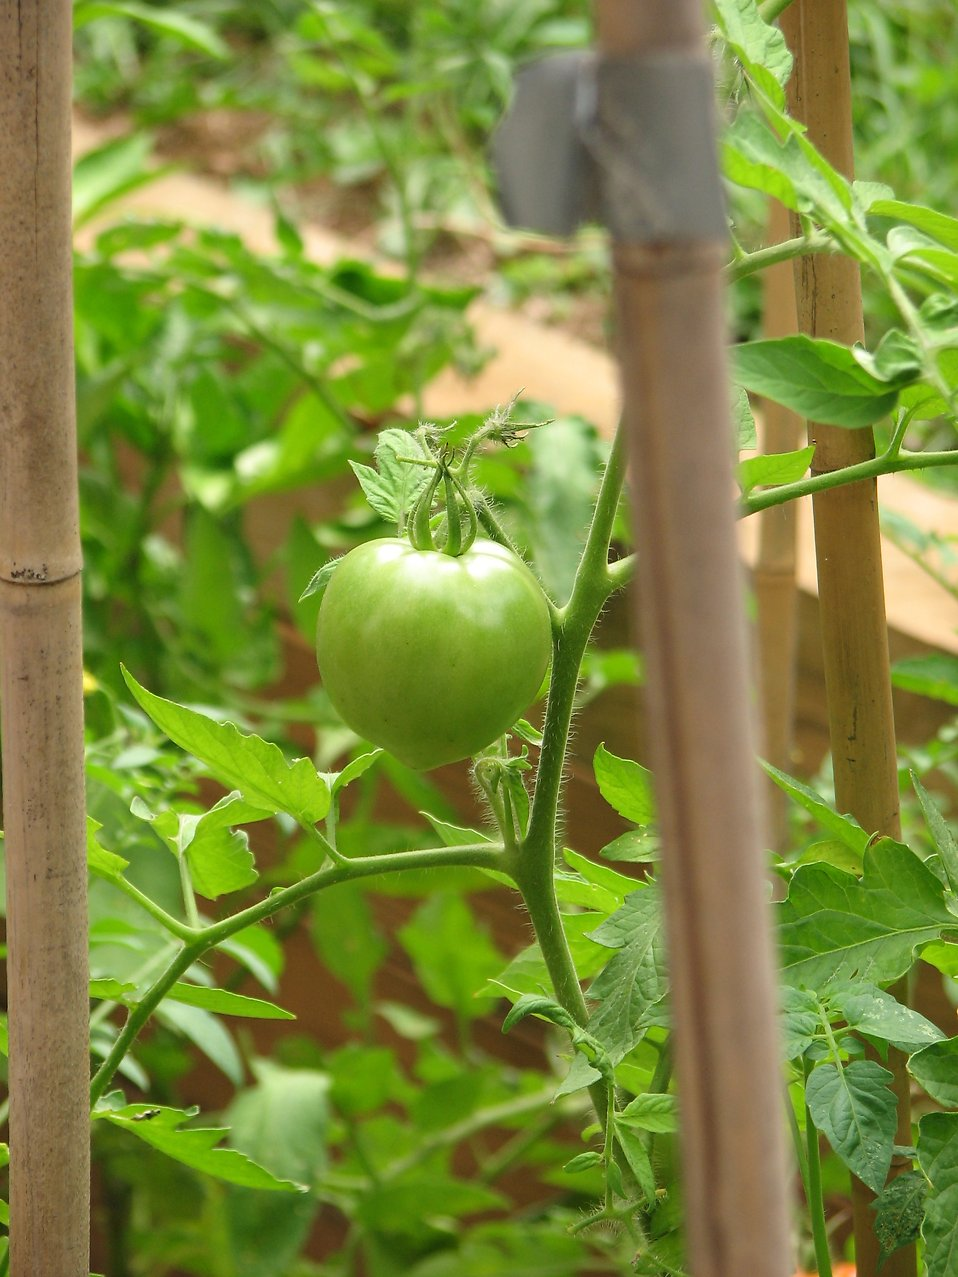 Closeup of a green tomato in a garden : Free Stock Photo